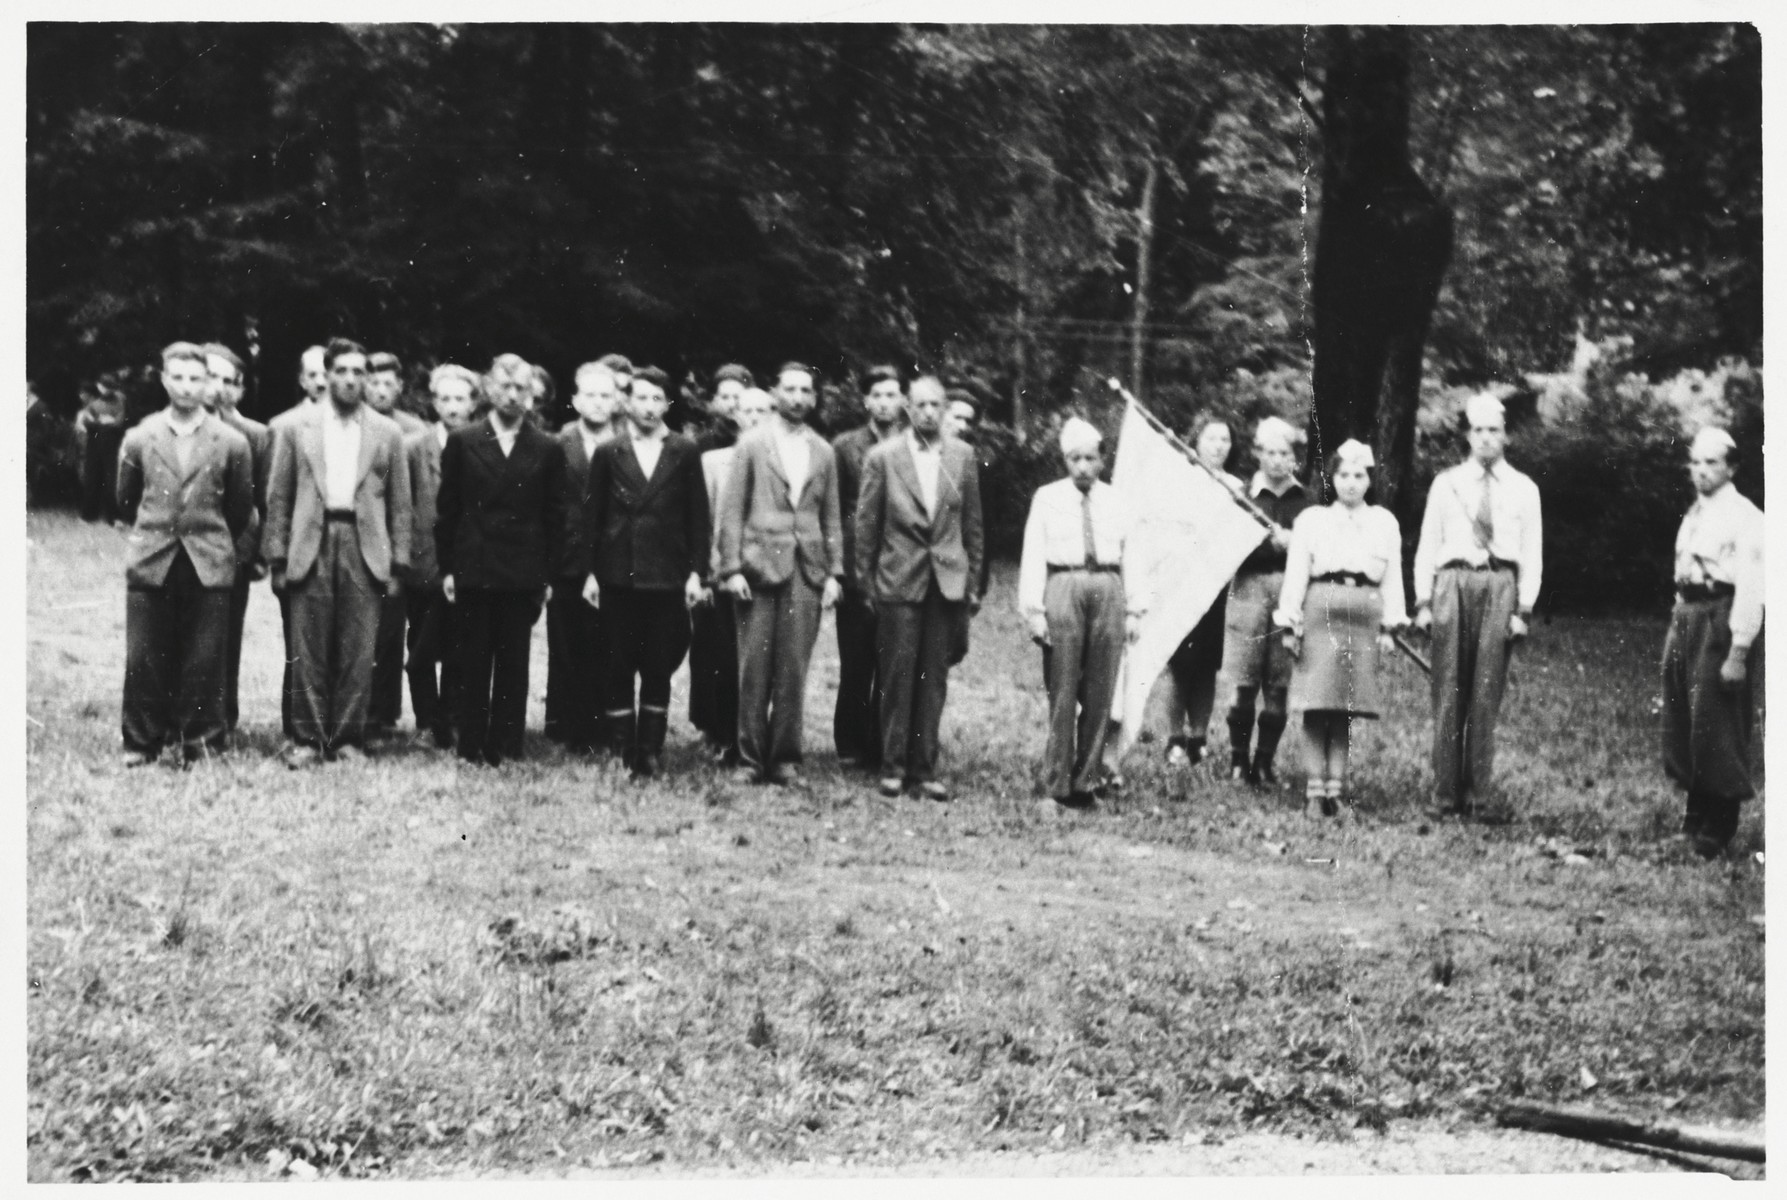 Members of the Betar revisionist Zionist youth movement in the Braunau displaced persons camp stand outside in formation.